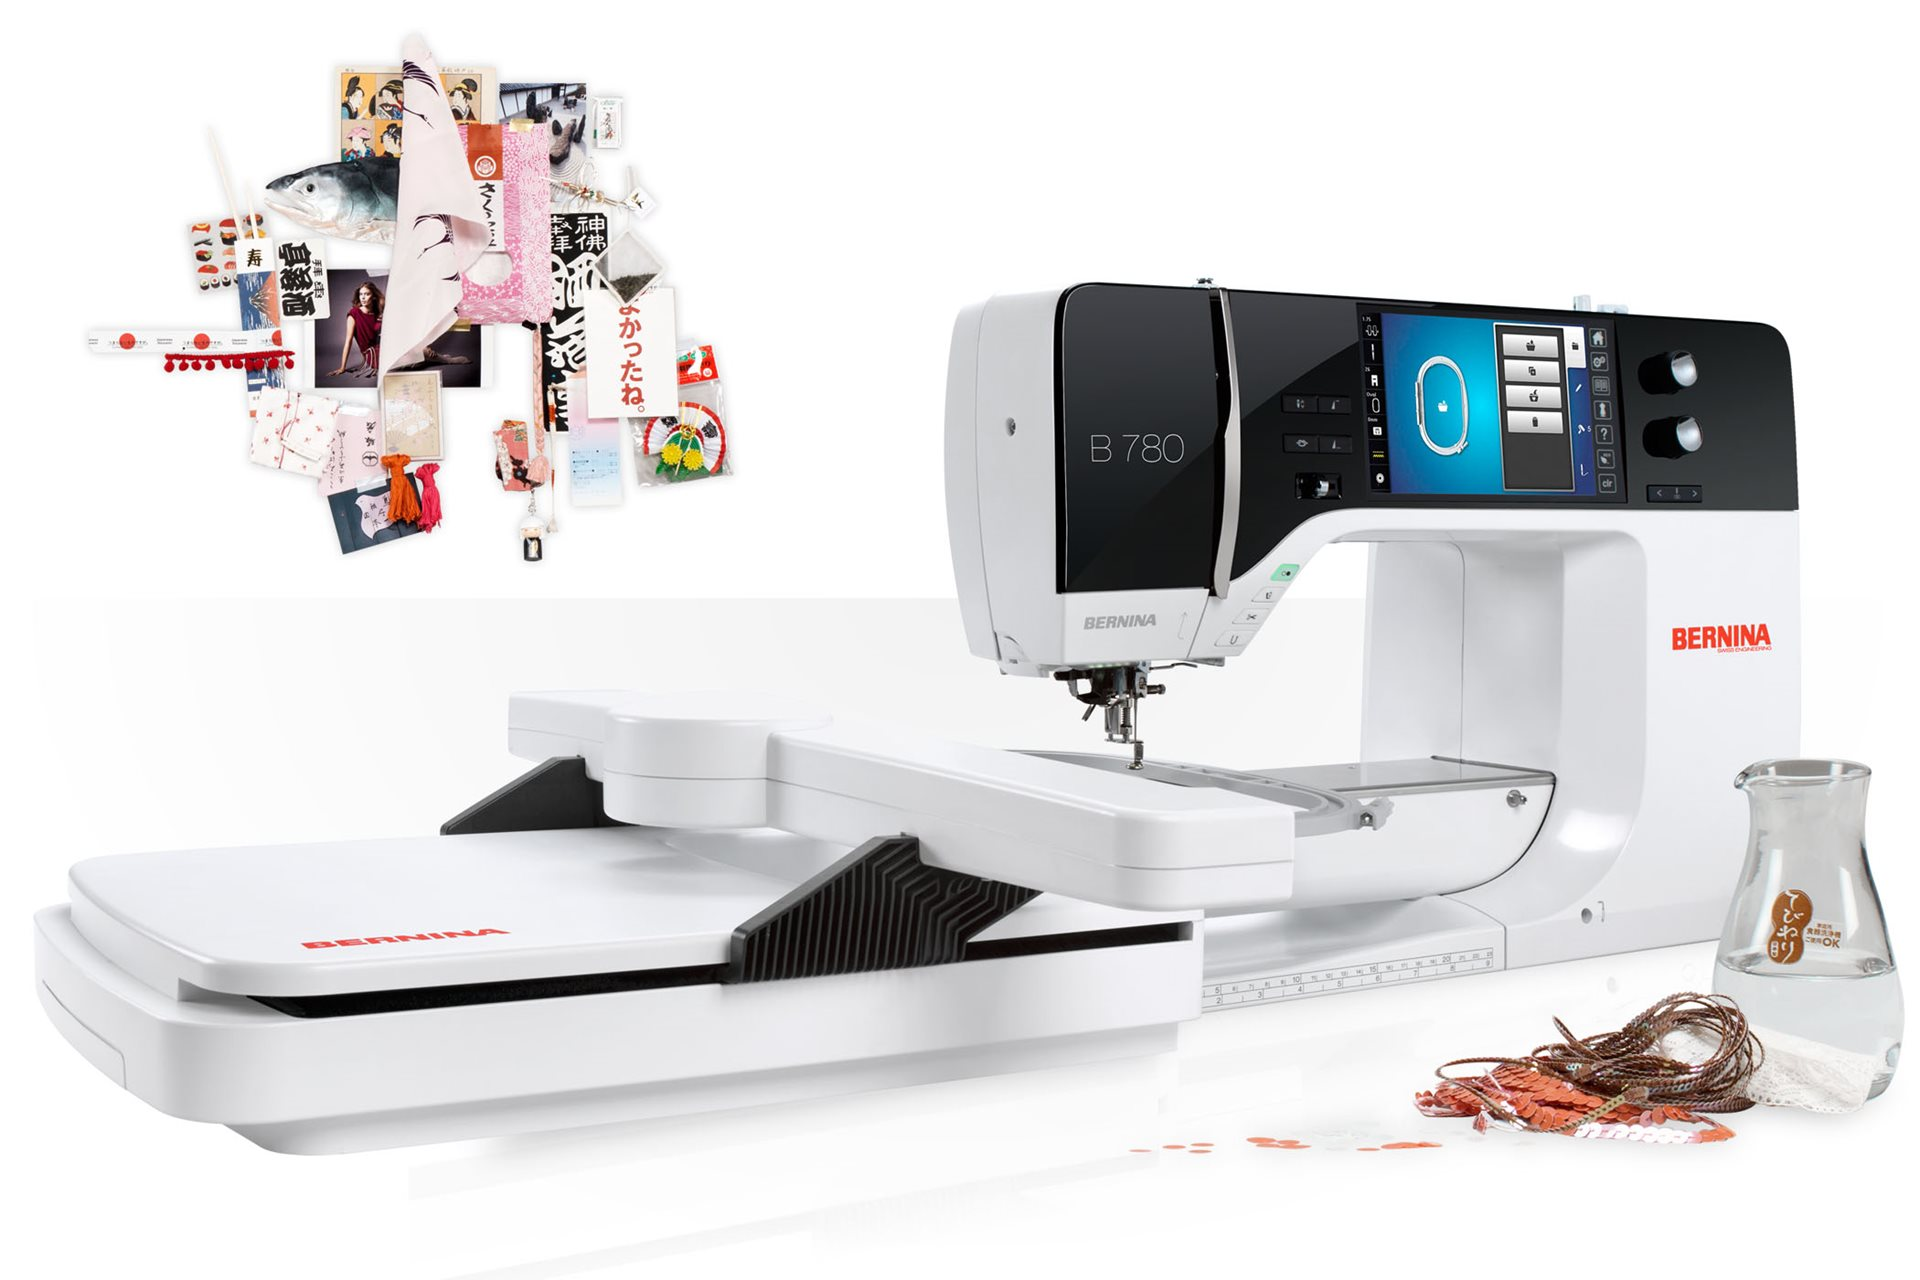 BERNINA 790 PLUS - la mejor para coser y bordar - BERNINA